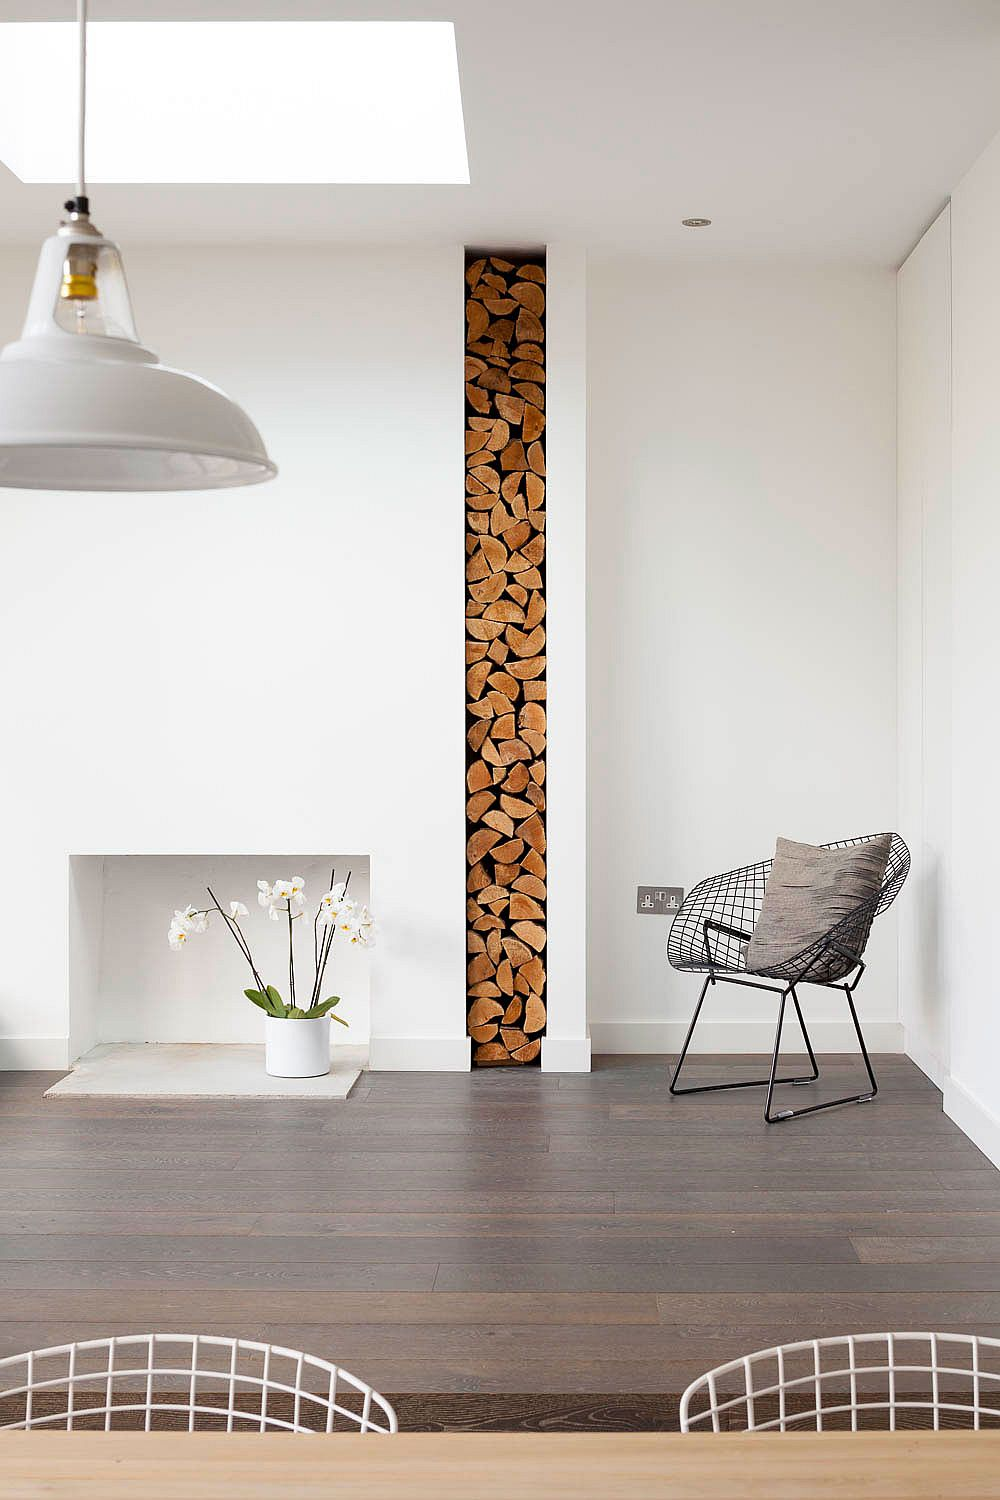 Gorgeously stacked firewood adds a new texture to the contemporary interior